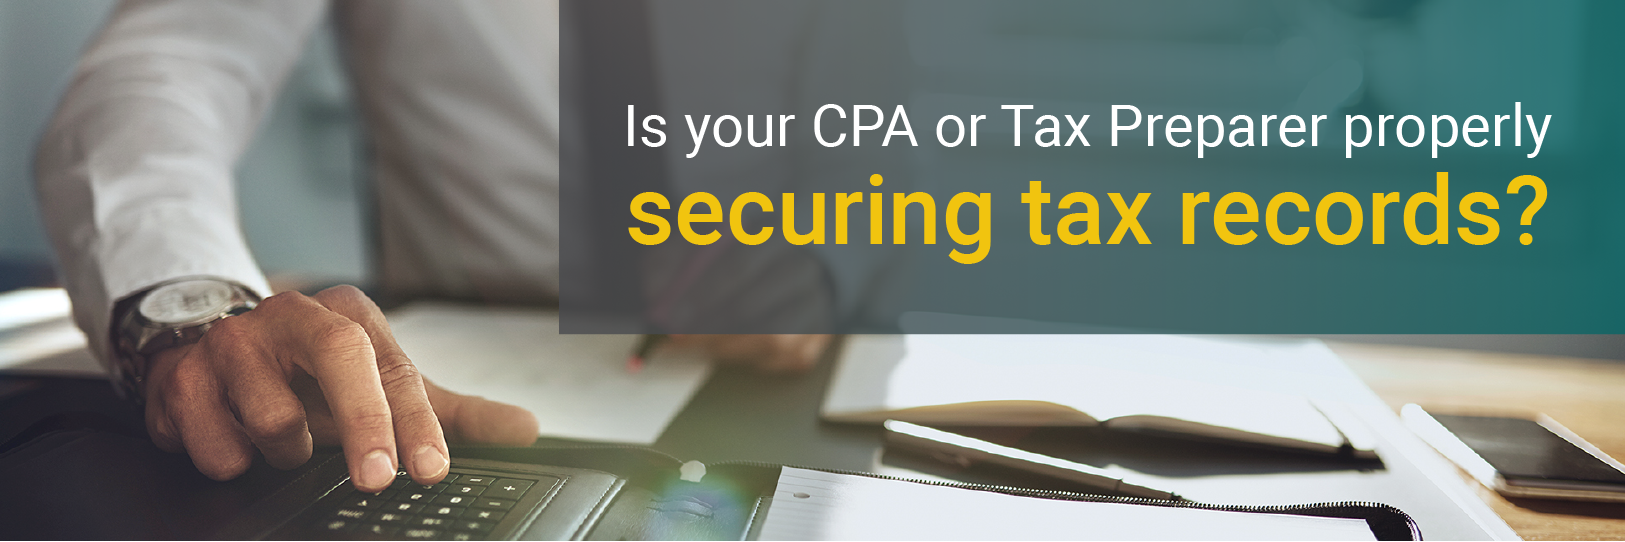 Is your CPA Properly Securing Tax Records?